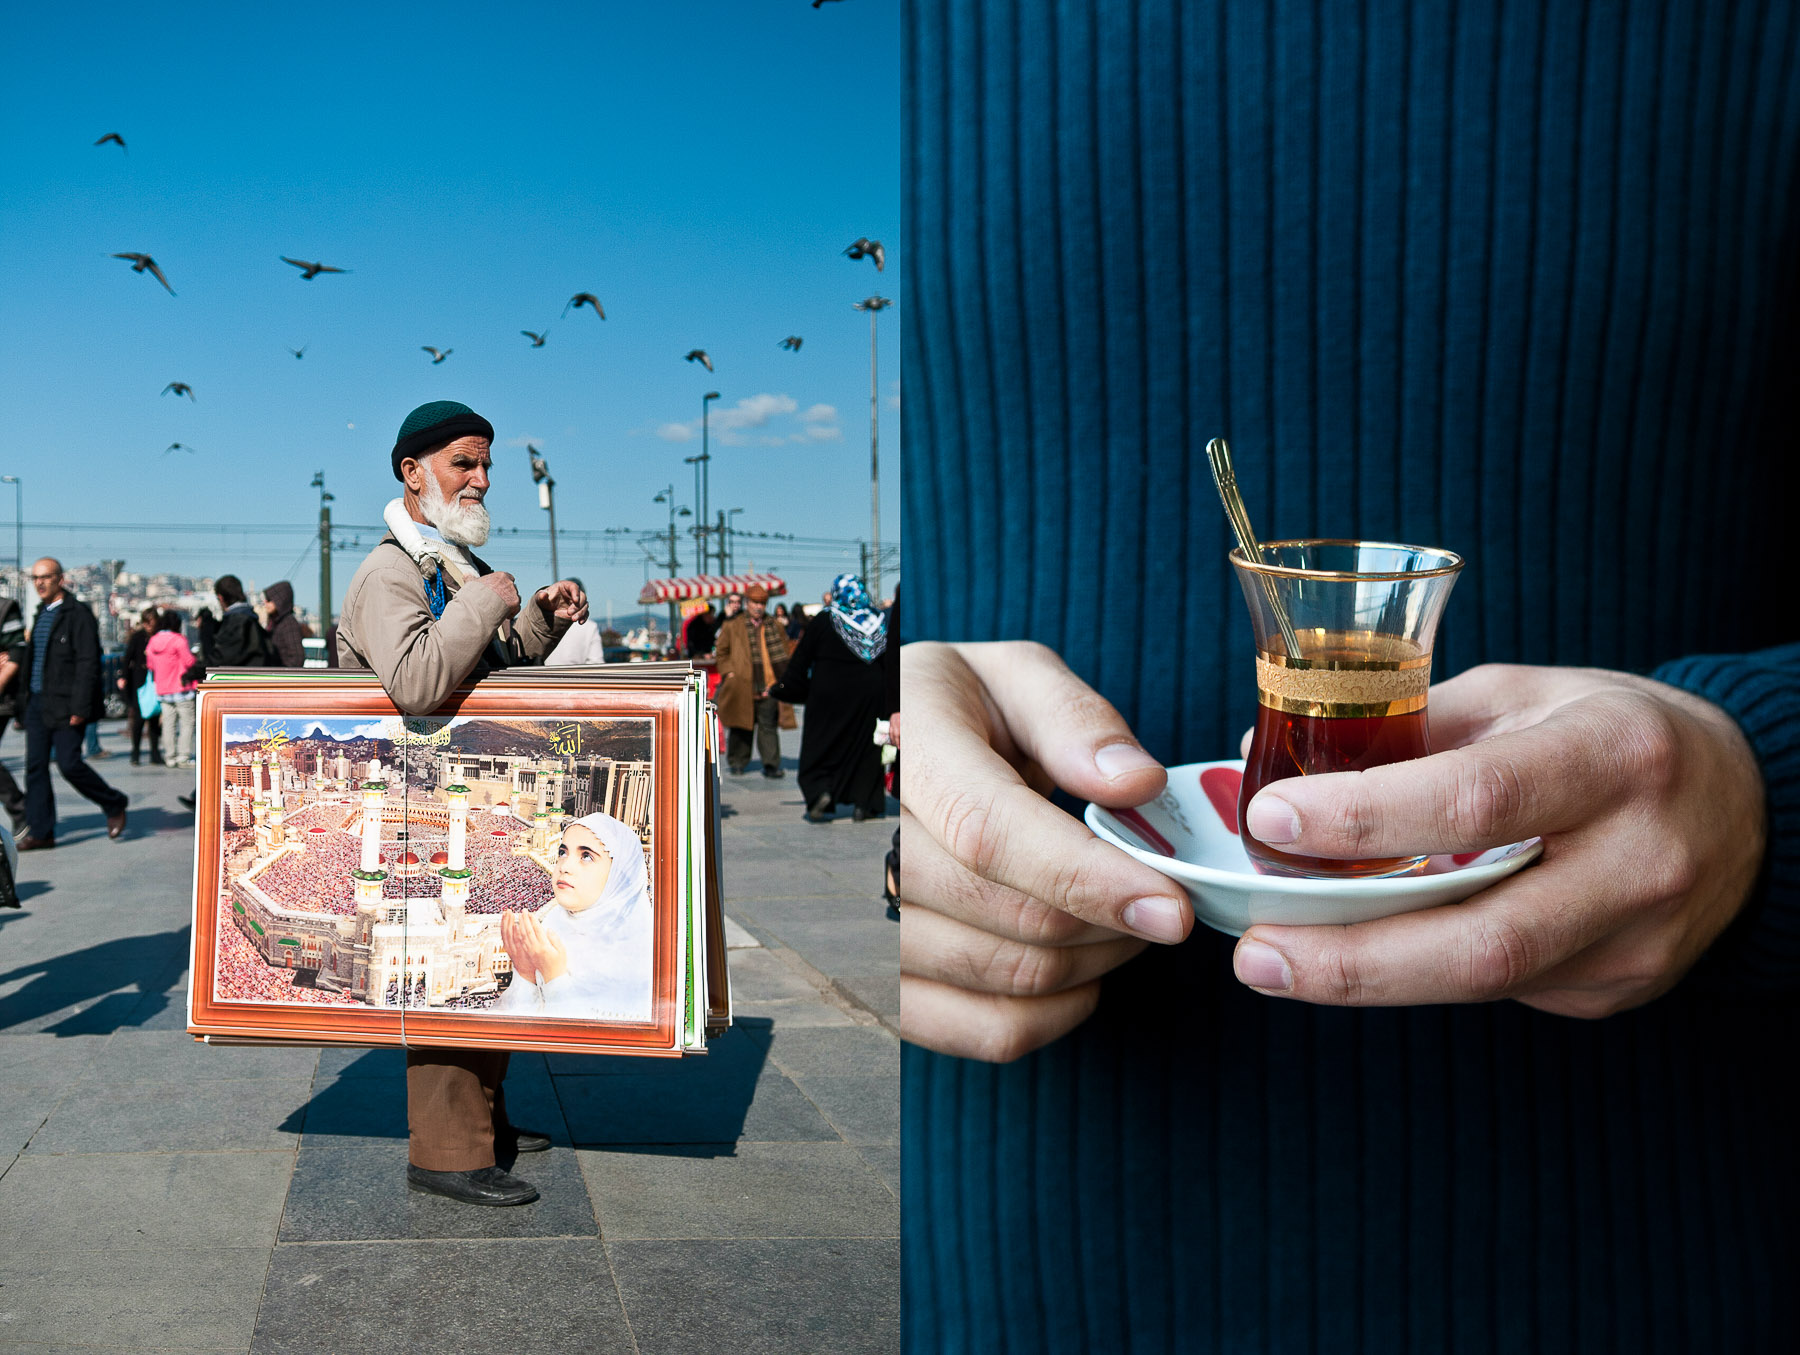 Turkish man holding a glass of partly finished Turkish tea outside the Spice Bazaar, Istanbul, Turkey.